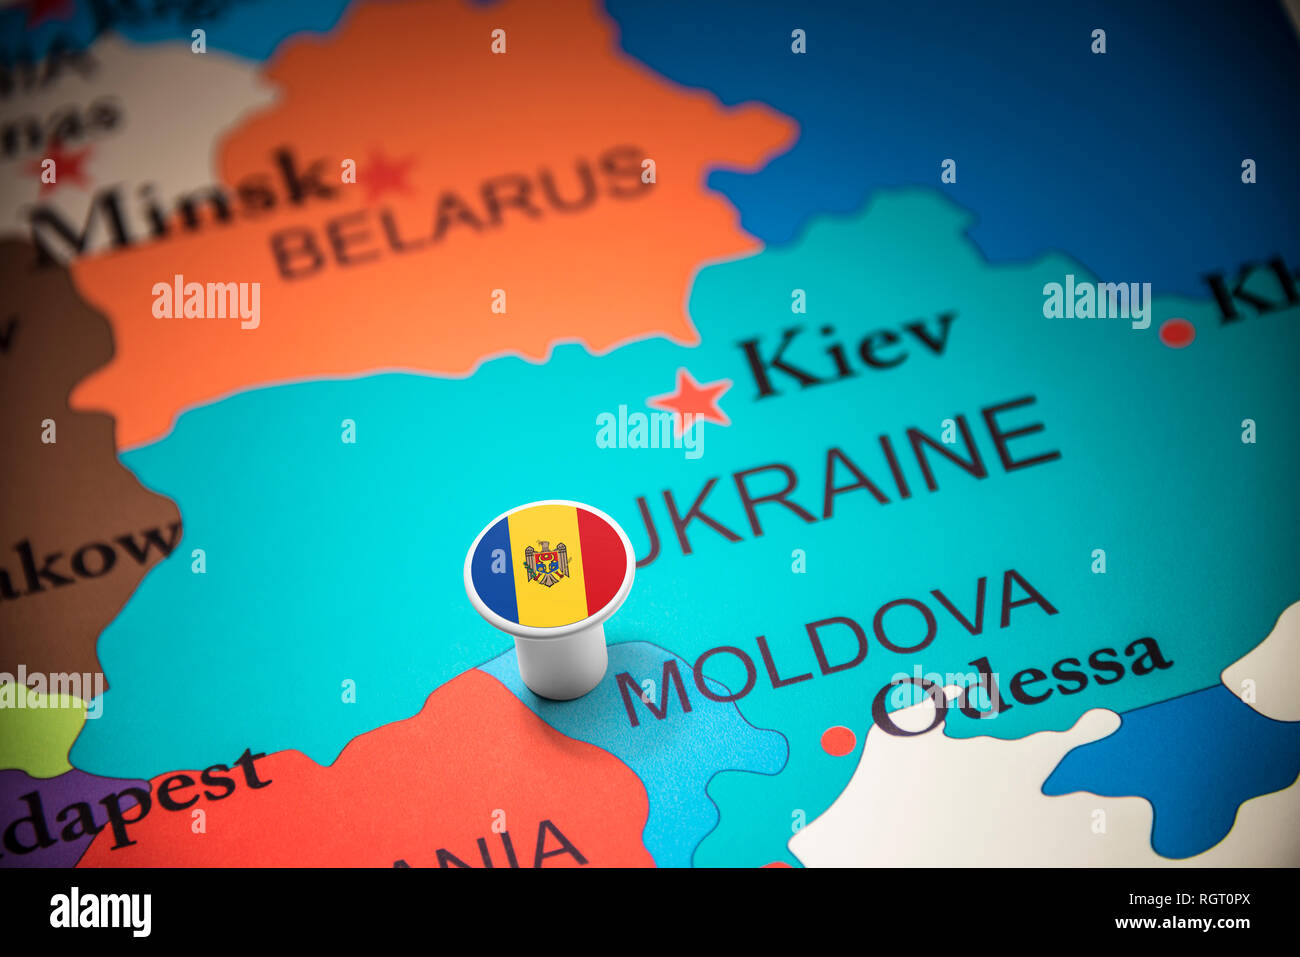 Moldova marked with a flag on the map - Stock Image